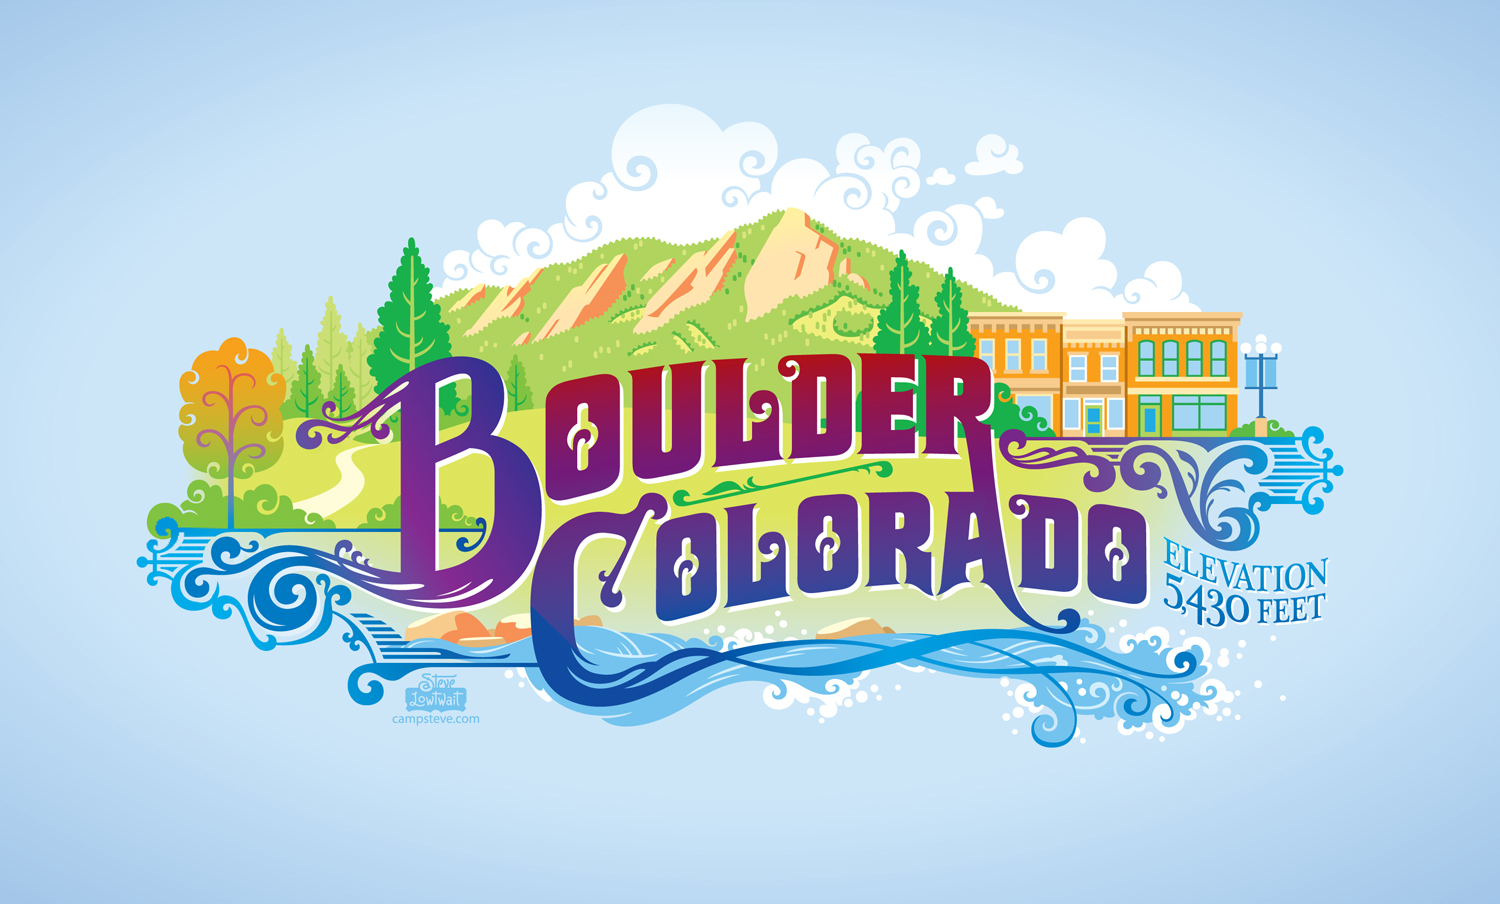 Boulder graphic  • Illustration for bicycle baskets on public bicycle rentals in Boulder, Colorado.  Client: B-Cycle